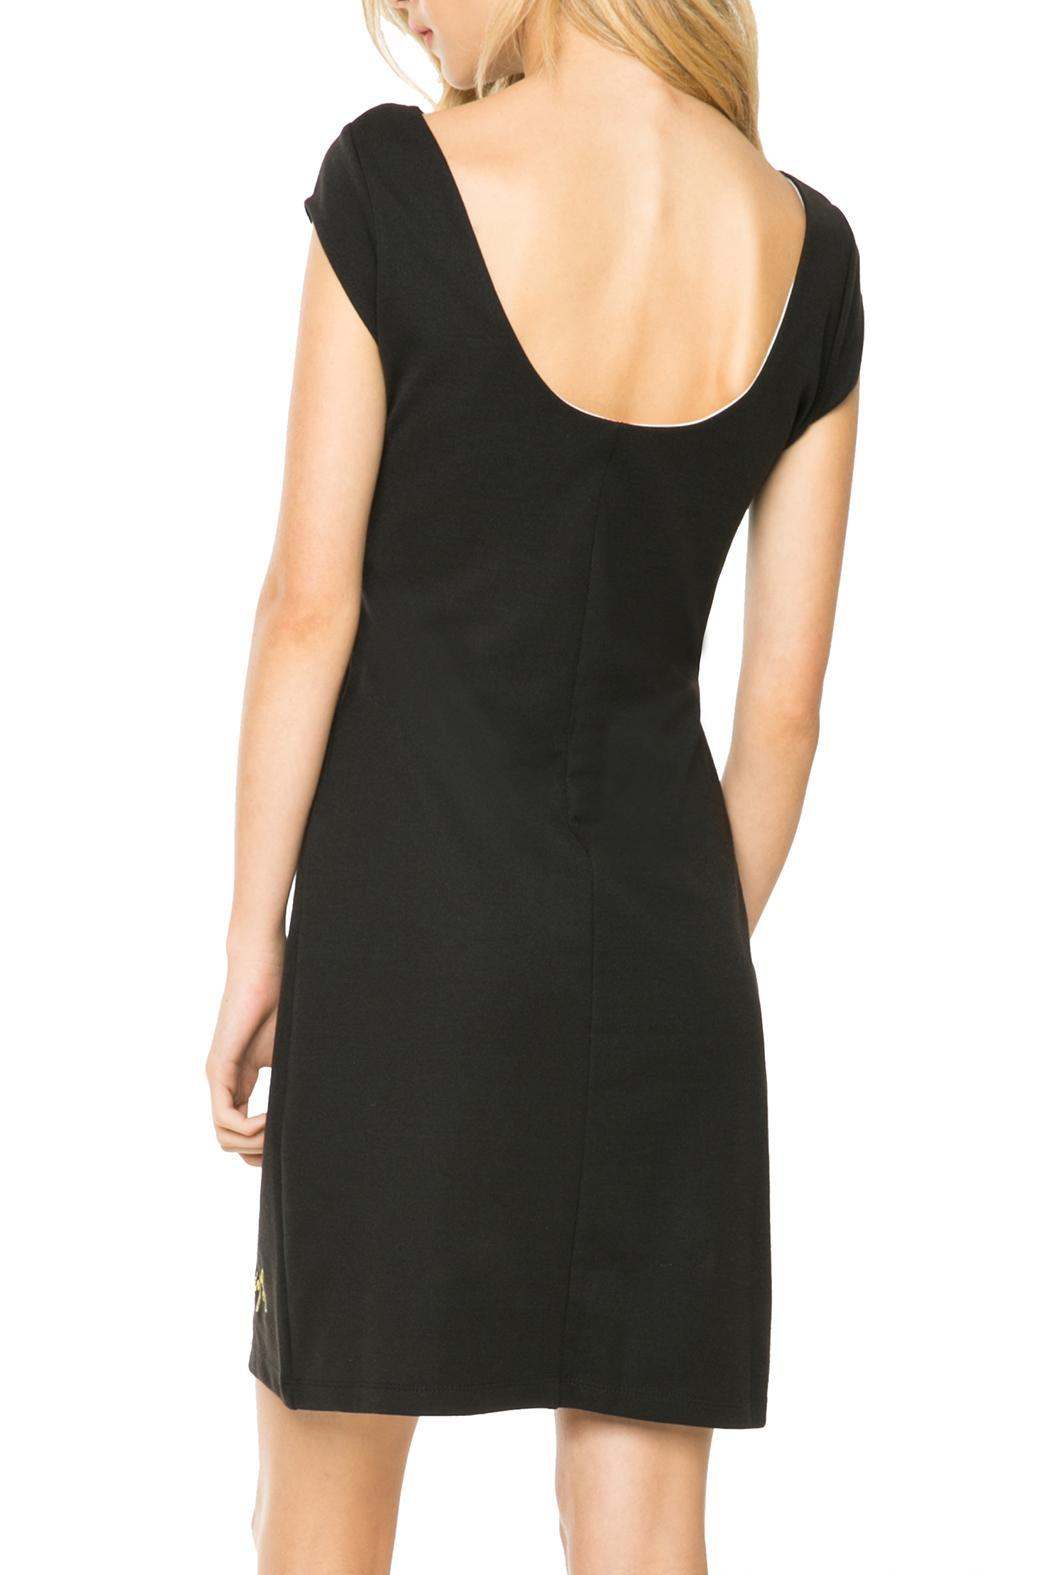 DESIGUAL Black White Cut-Out Dress - Front Full Image